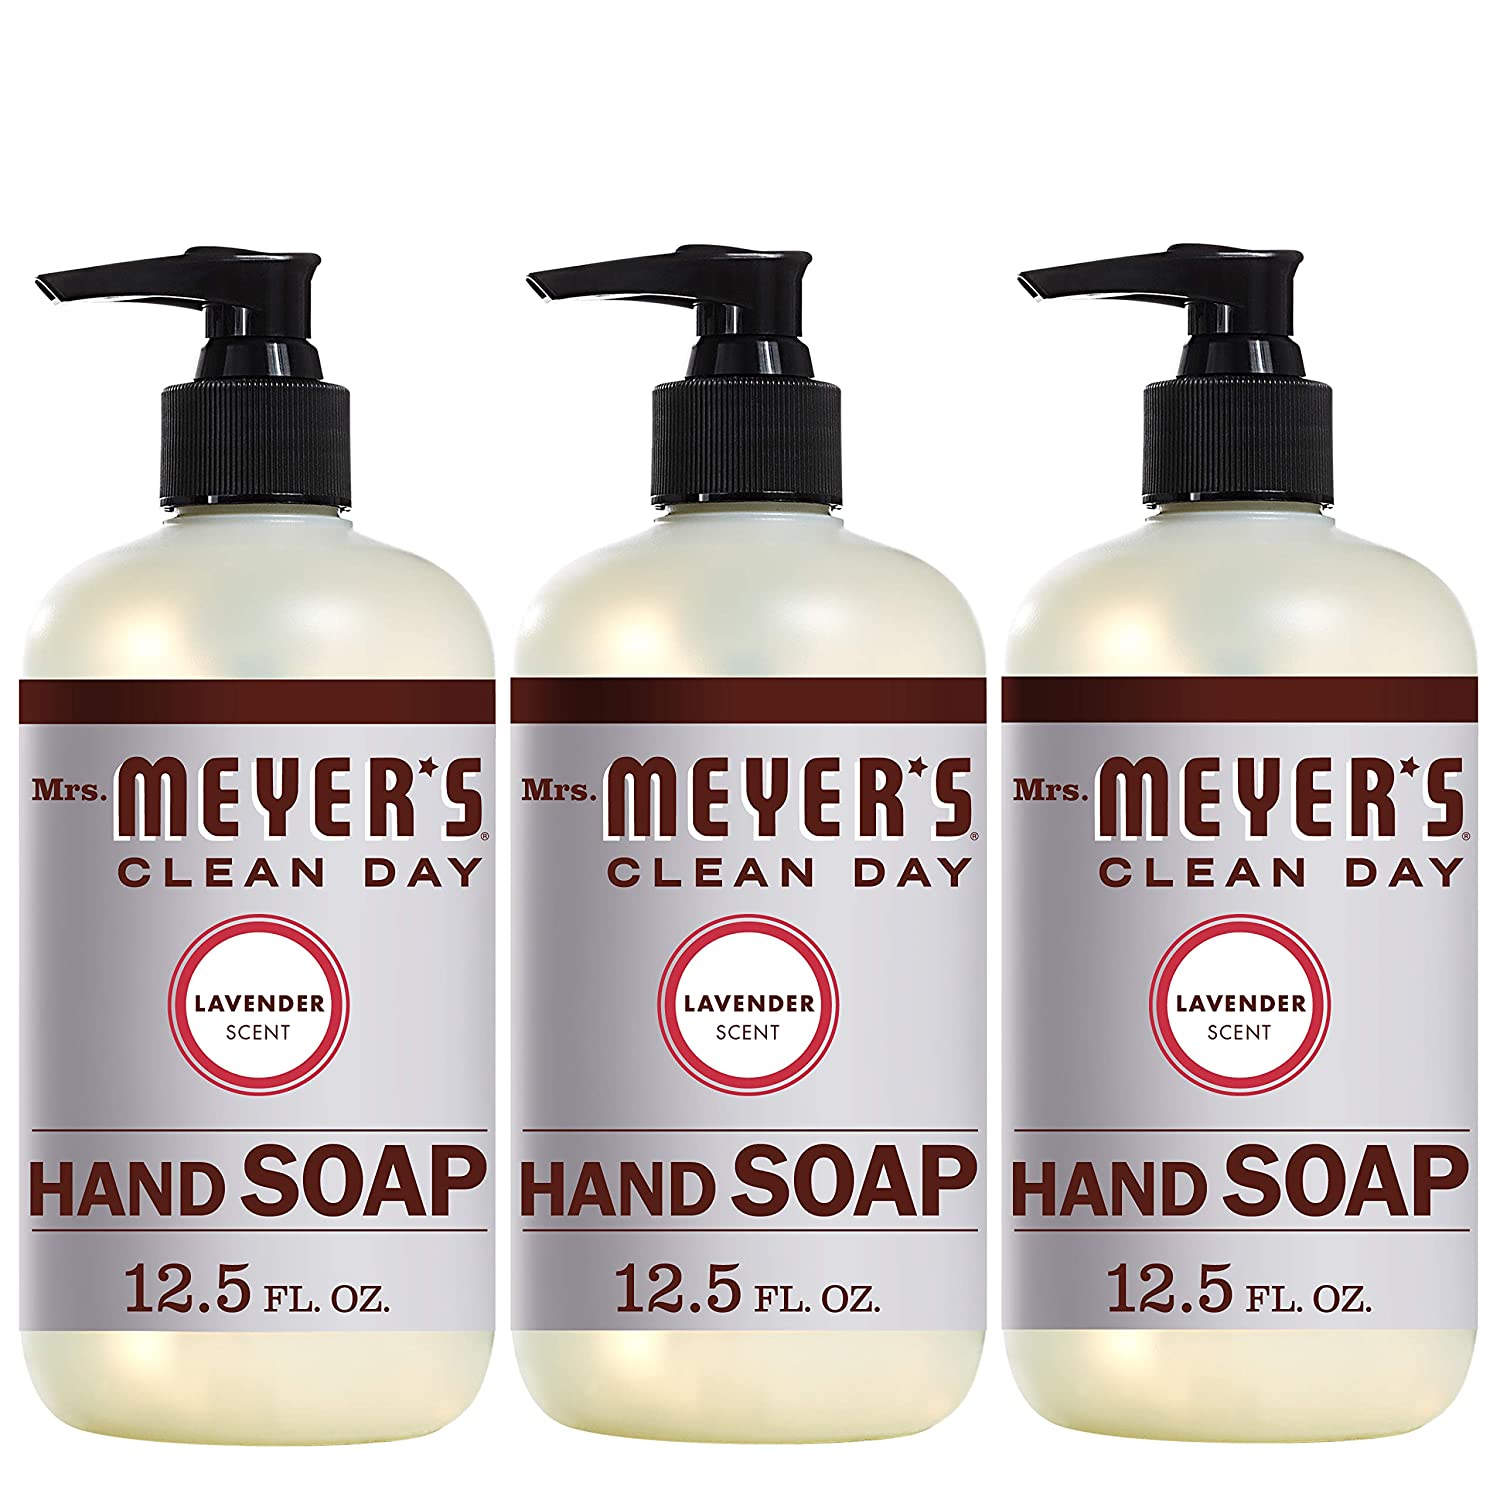 Mrs. Meyer's Clean Day Liquid Hand Soap, Lavender Scent, 12.5 ounce bottle (Pack of 3)